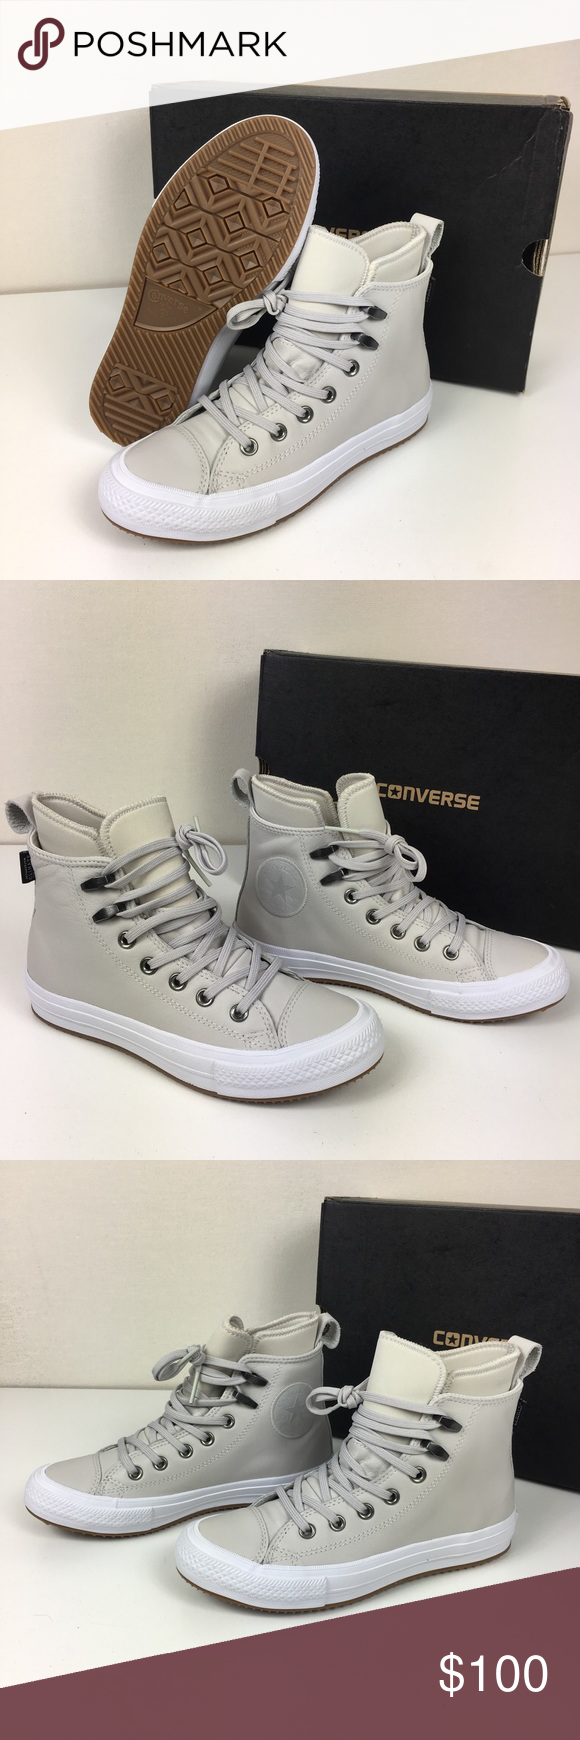 800a6de29bfc Converse CTAS Waterproof Hi Top Sneakers Converse Women s Chuck Taylor All  Star Waterproof Boot Hi Top Sneakers With Lunarlon Leather Upper Counter  Climate ...